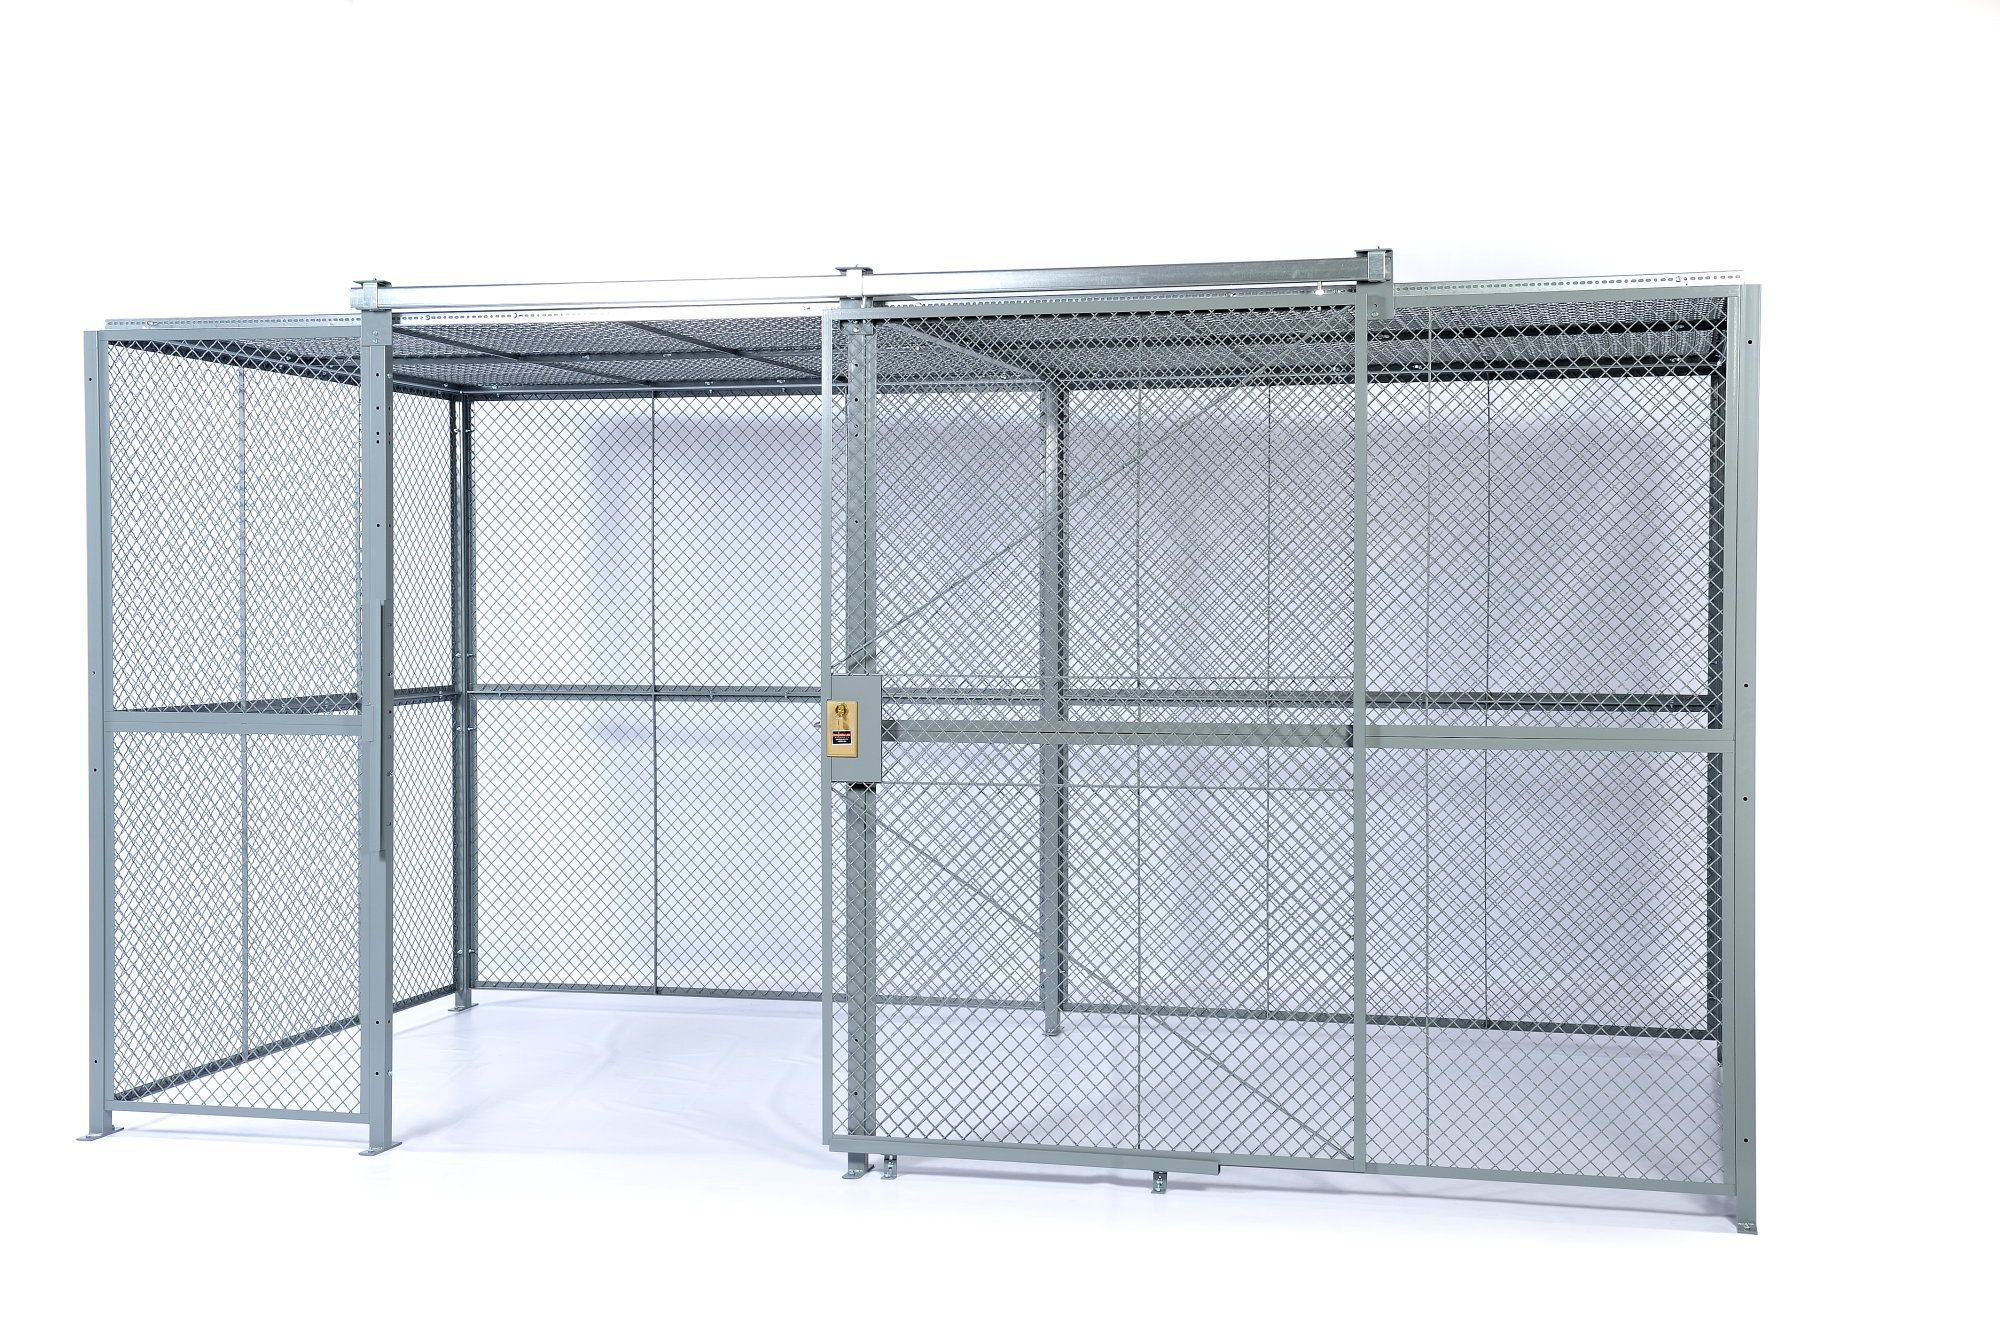 4-sided enclosure with woven wire mesh. Includes standard sliding ...